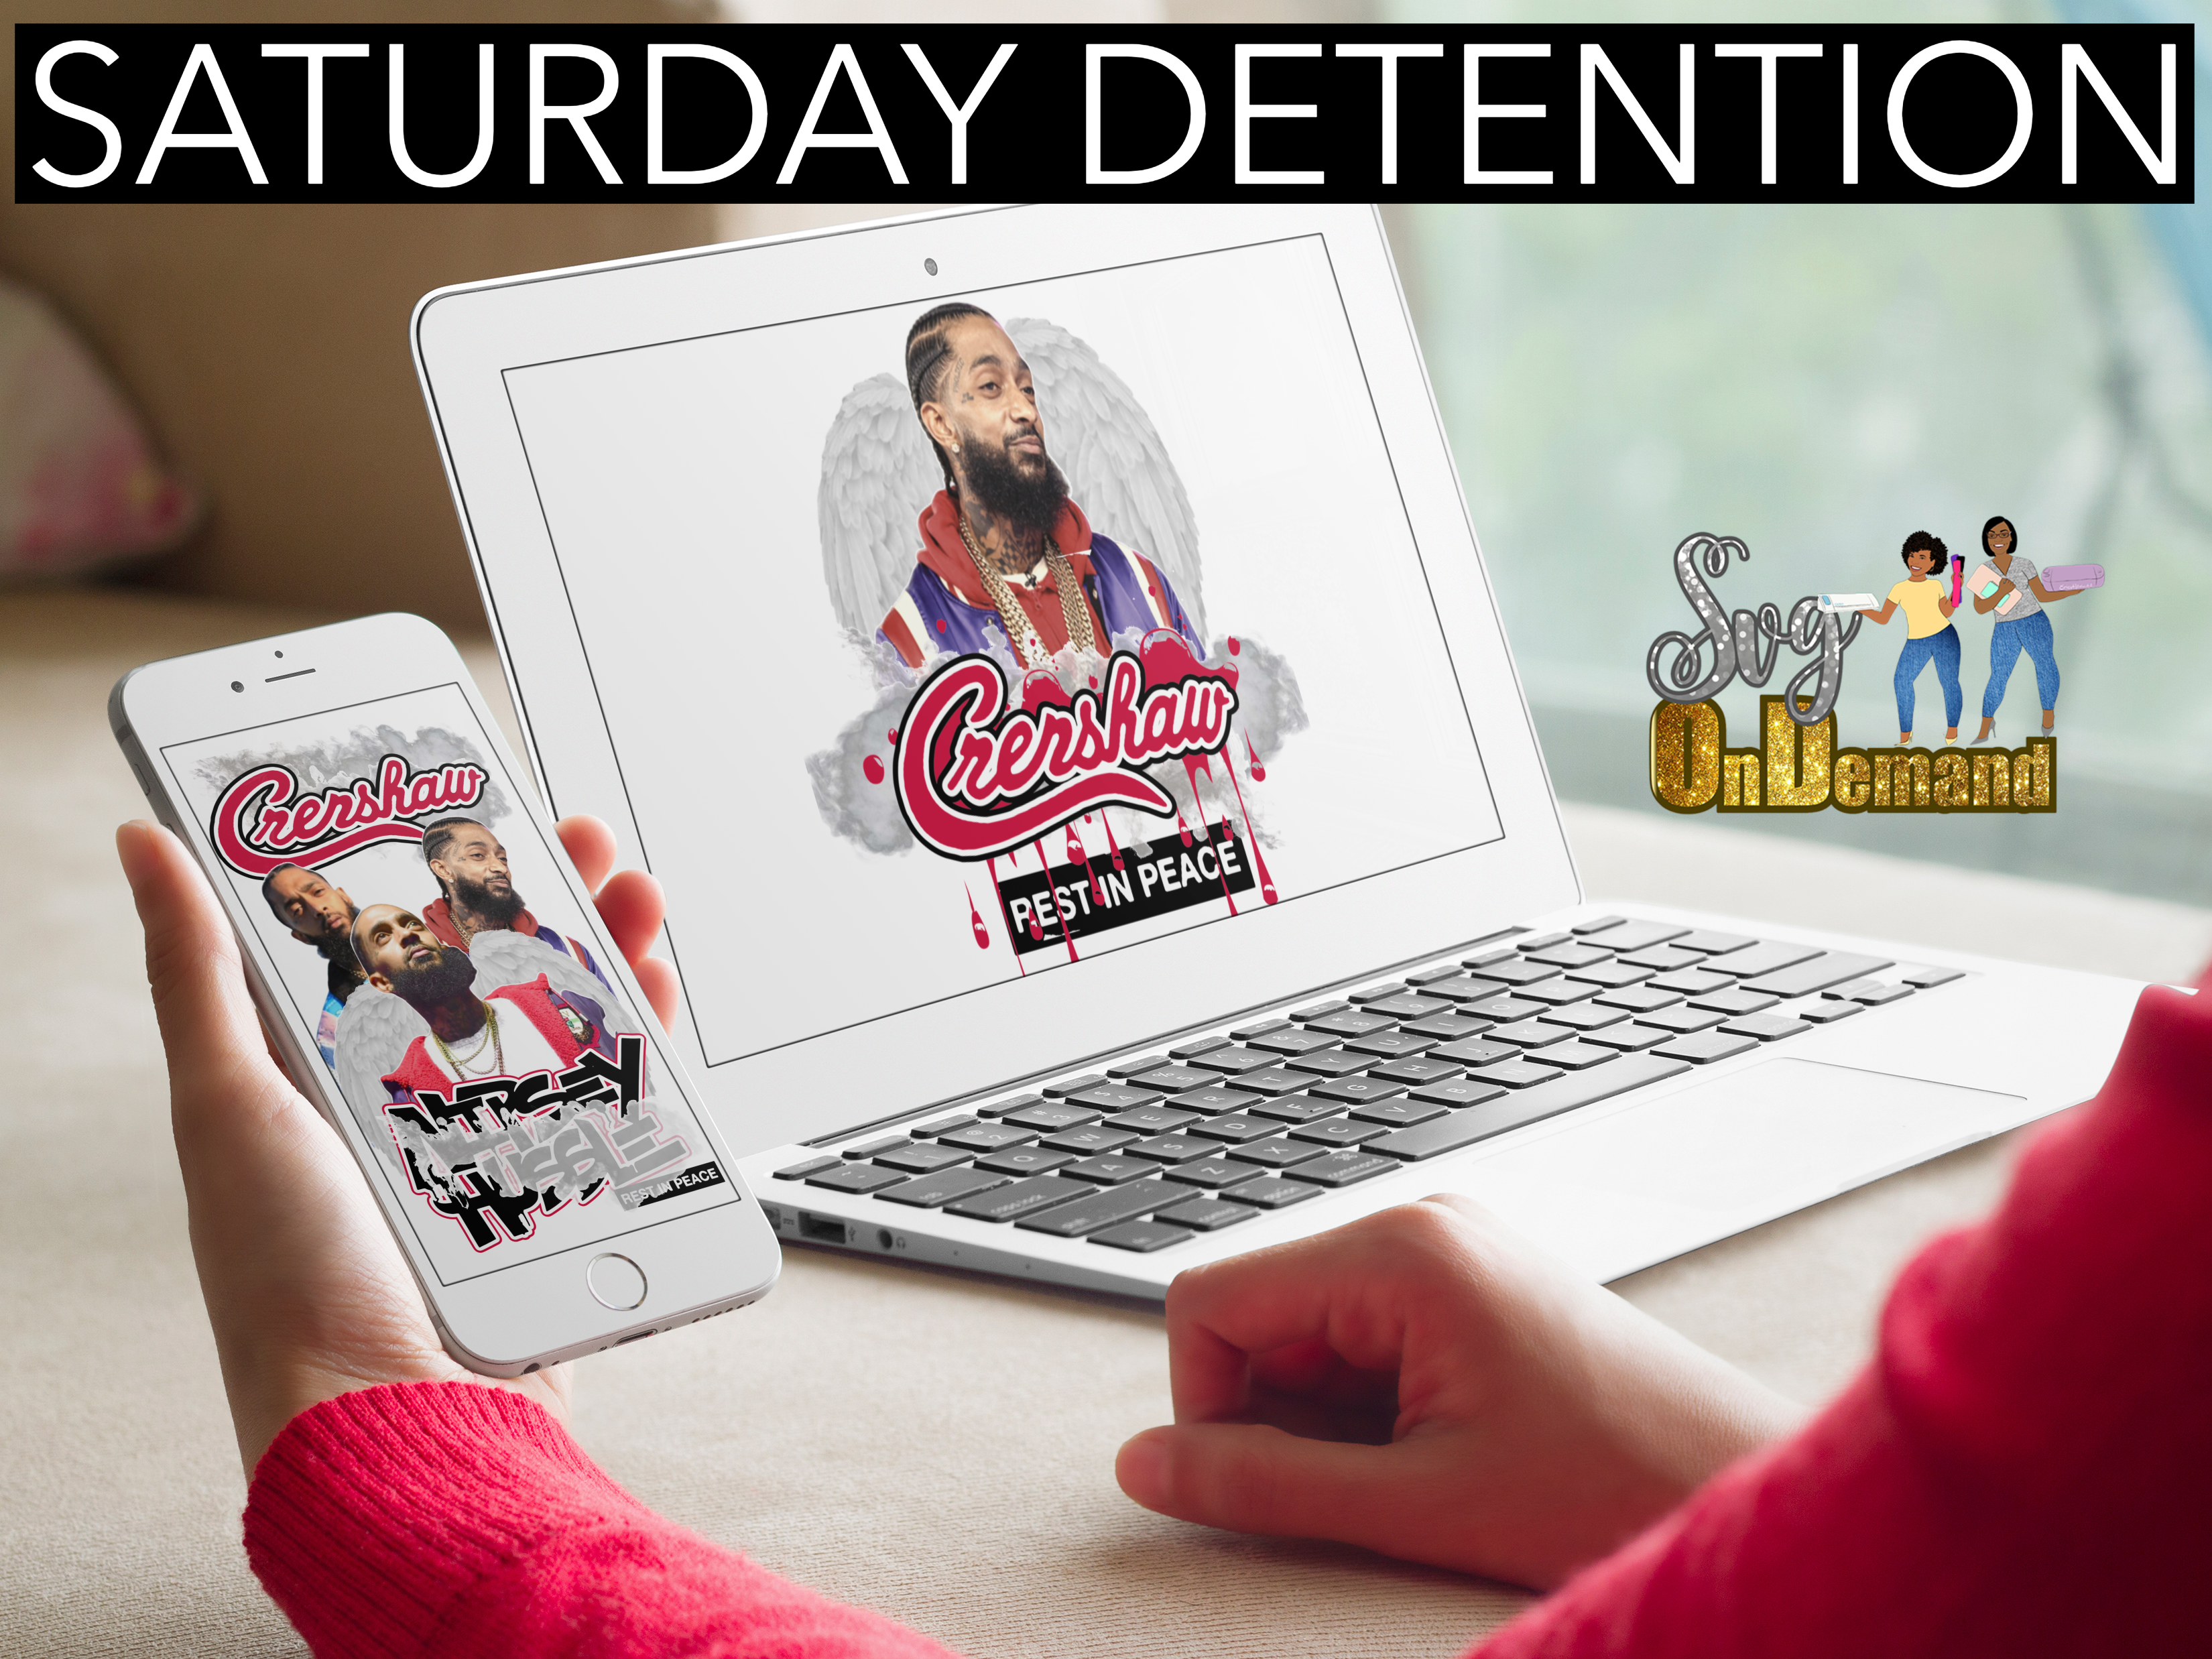 Saturday Detention Live